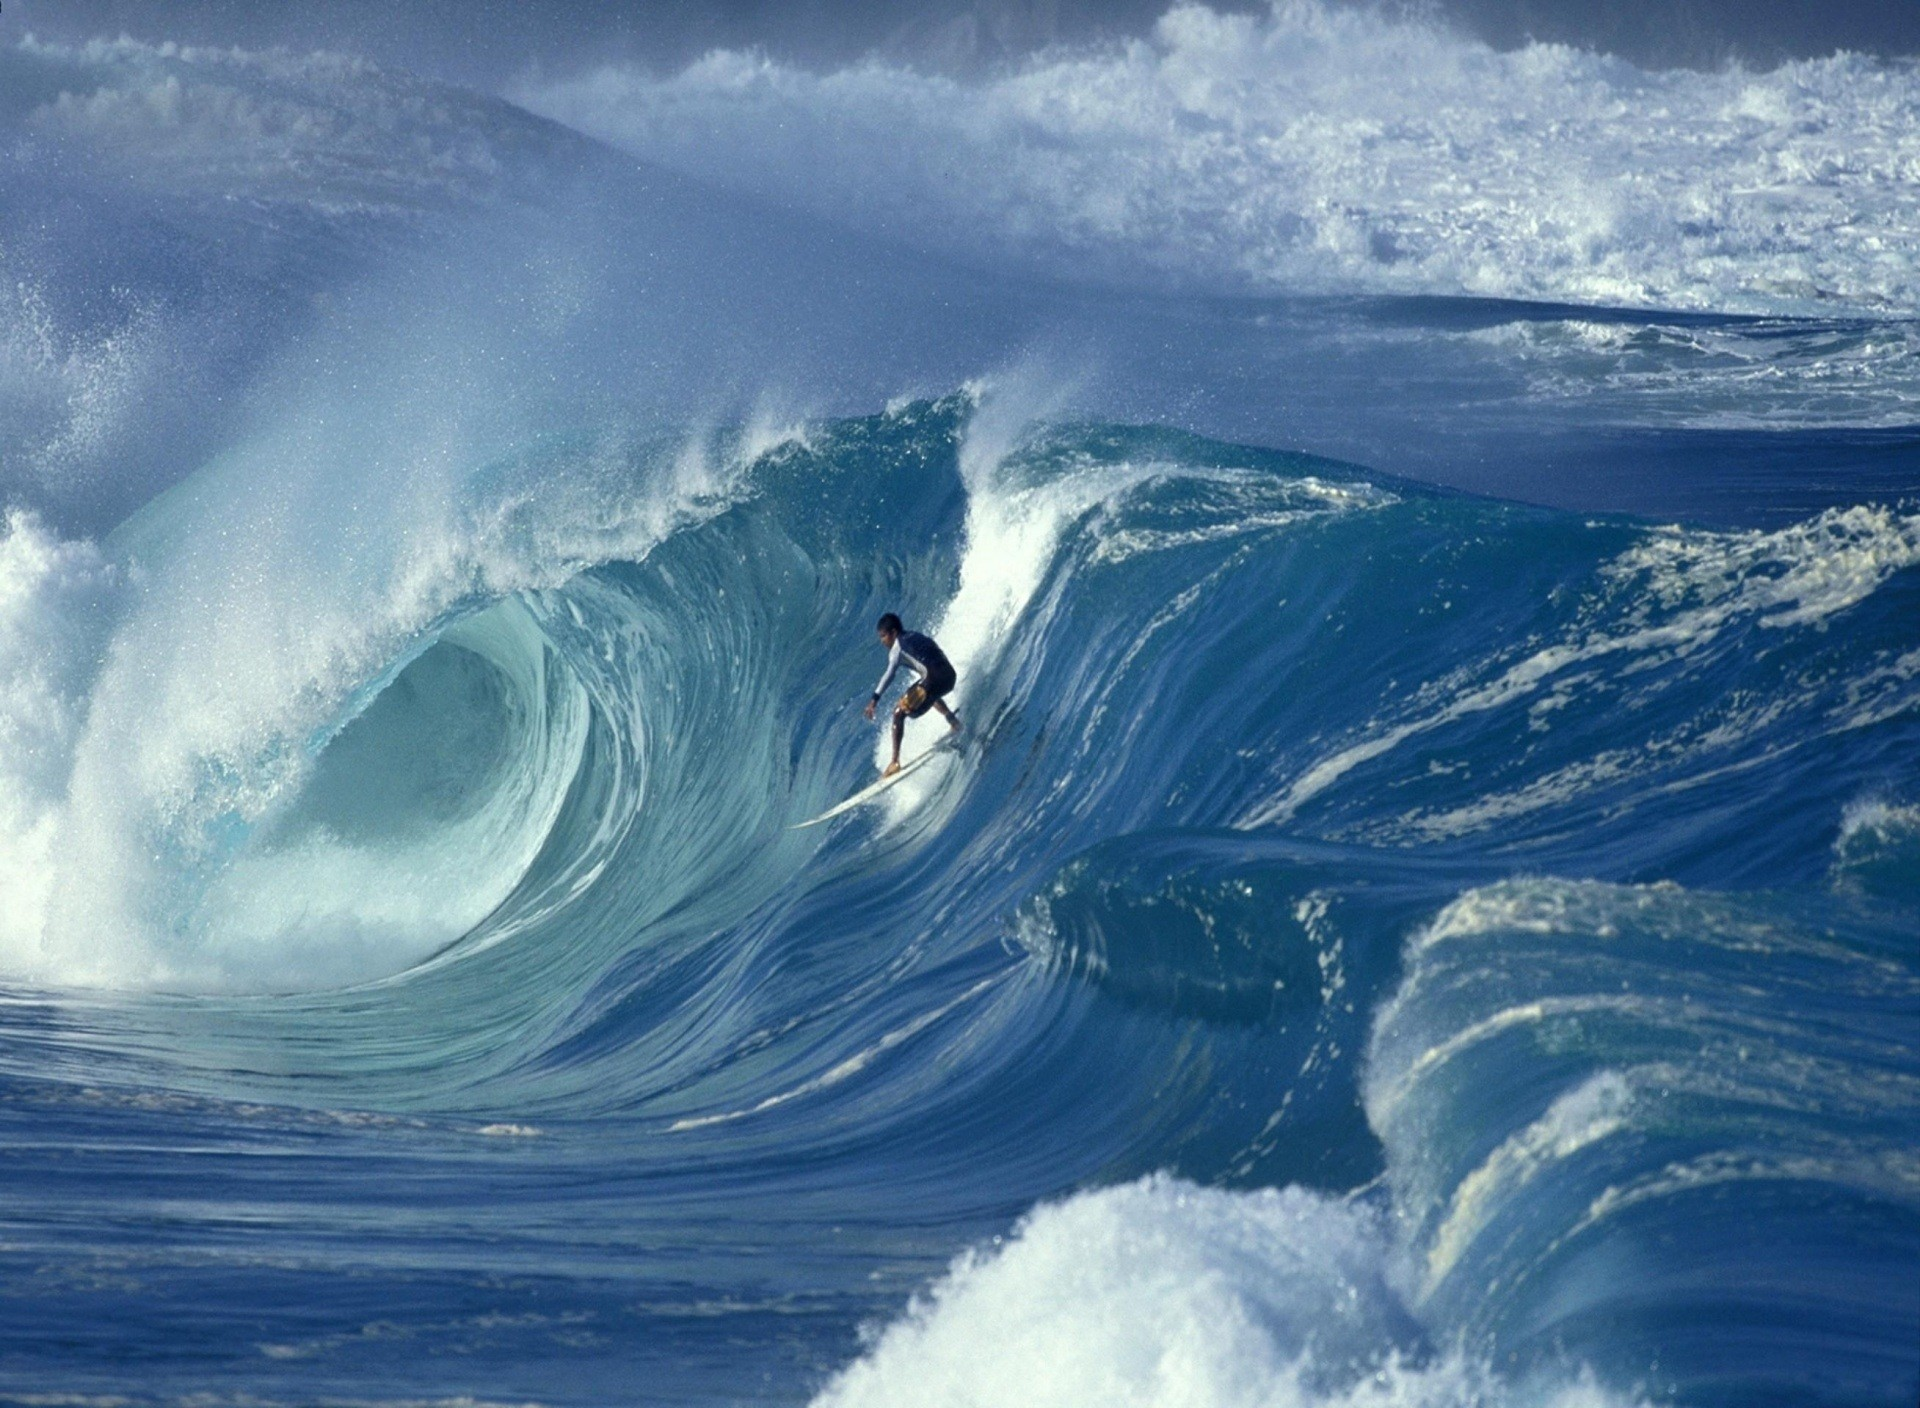 free Surf wallpaper screensaver preview id 8174 .